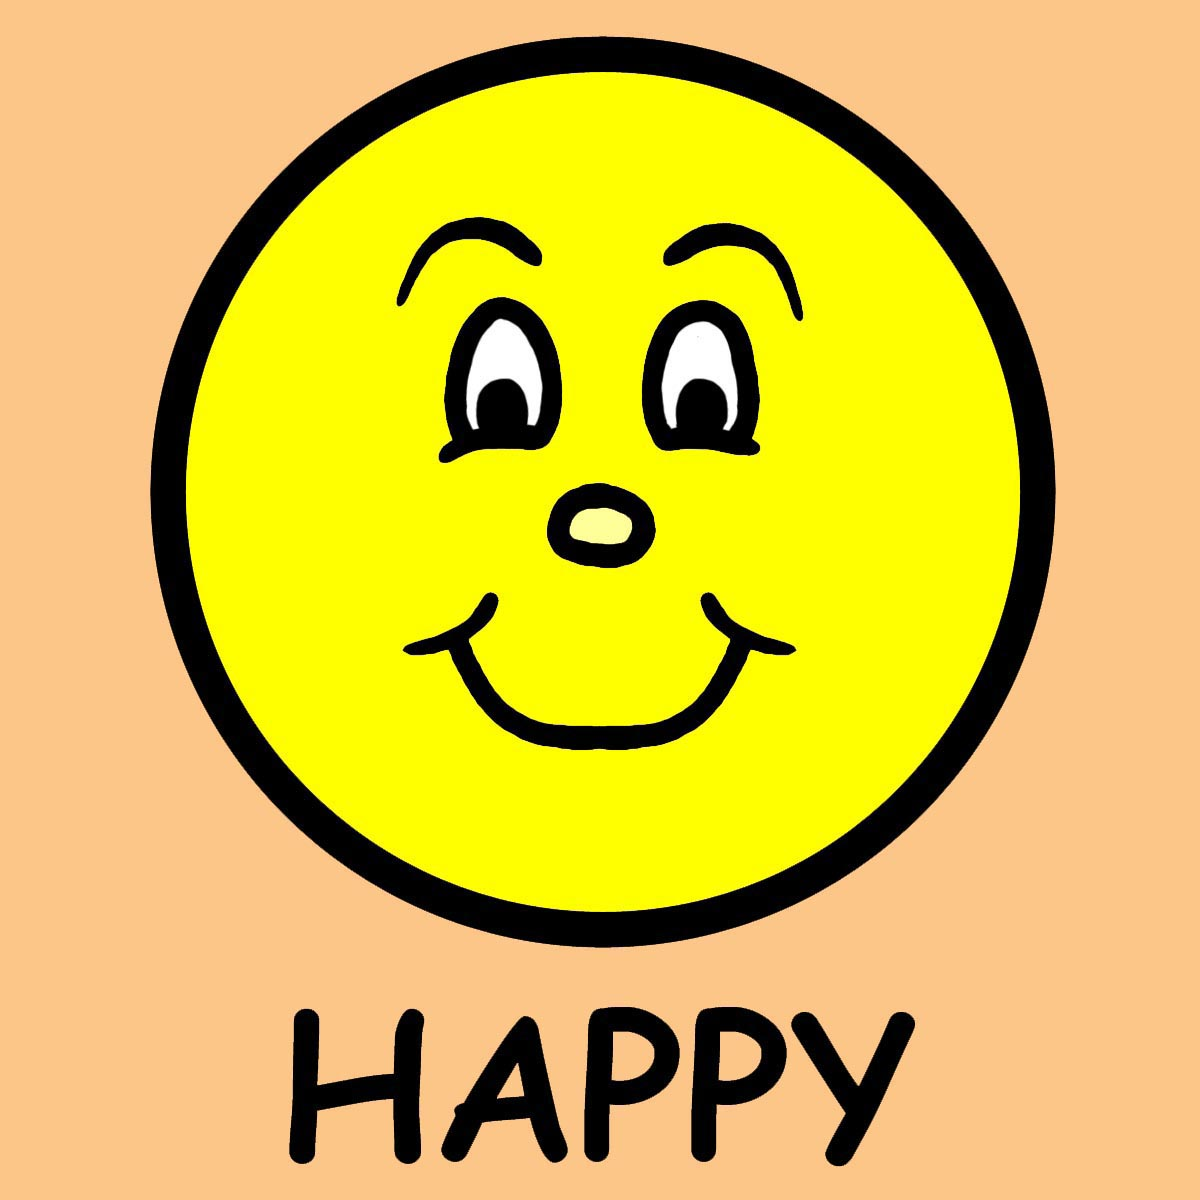 Sad And Happy Faces Clip Art - ClipArt Best